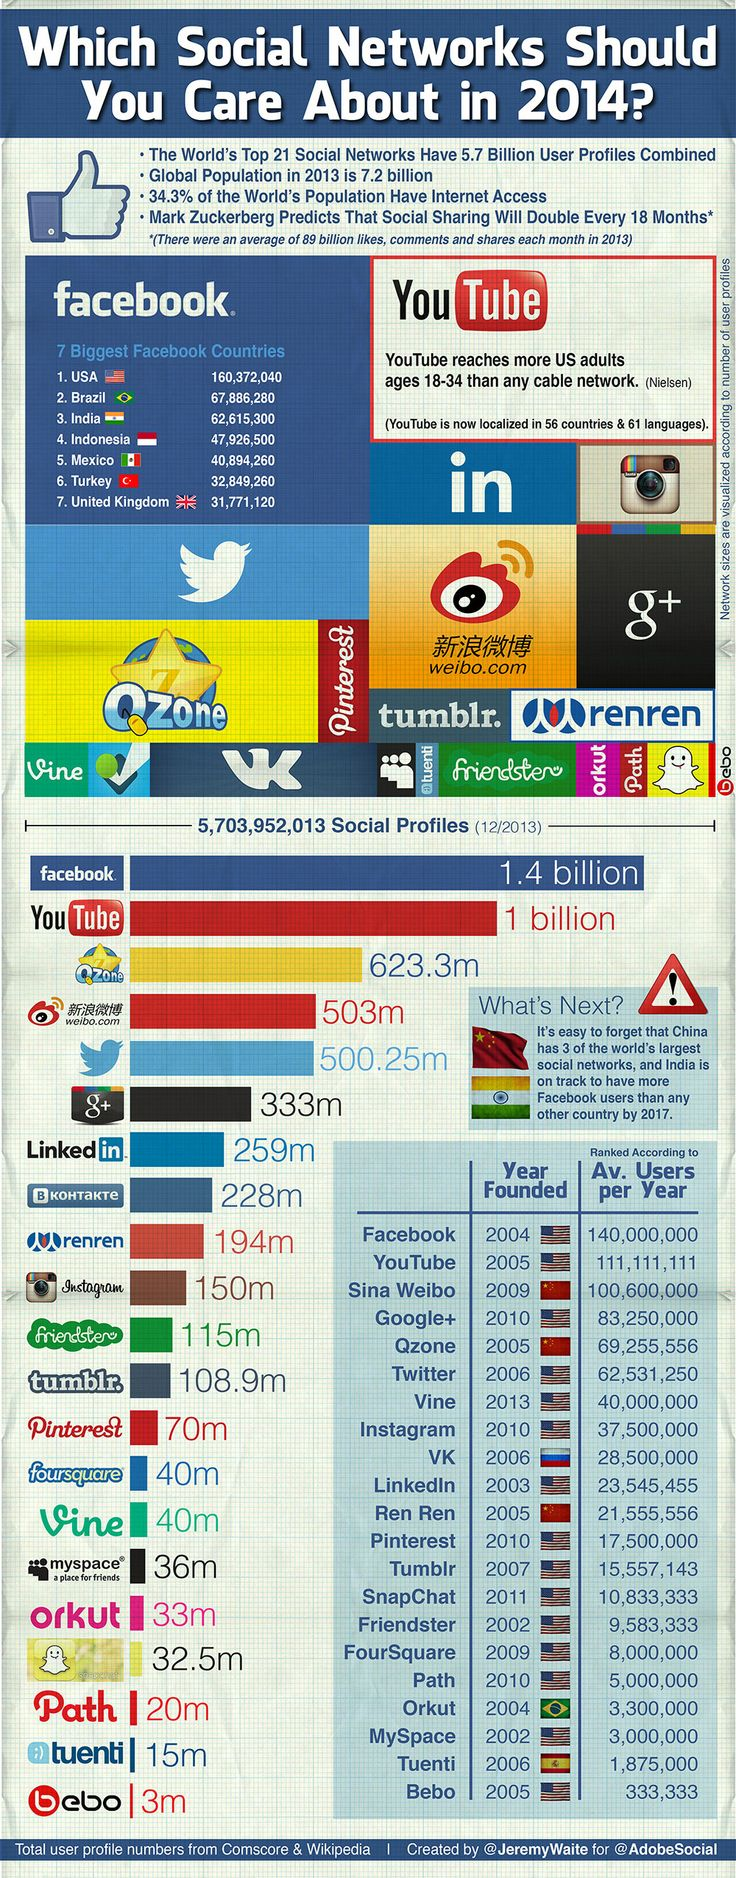 Which Social Networks Should You Care About in 2014?